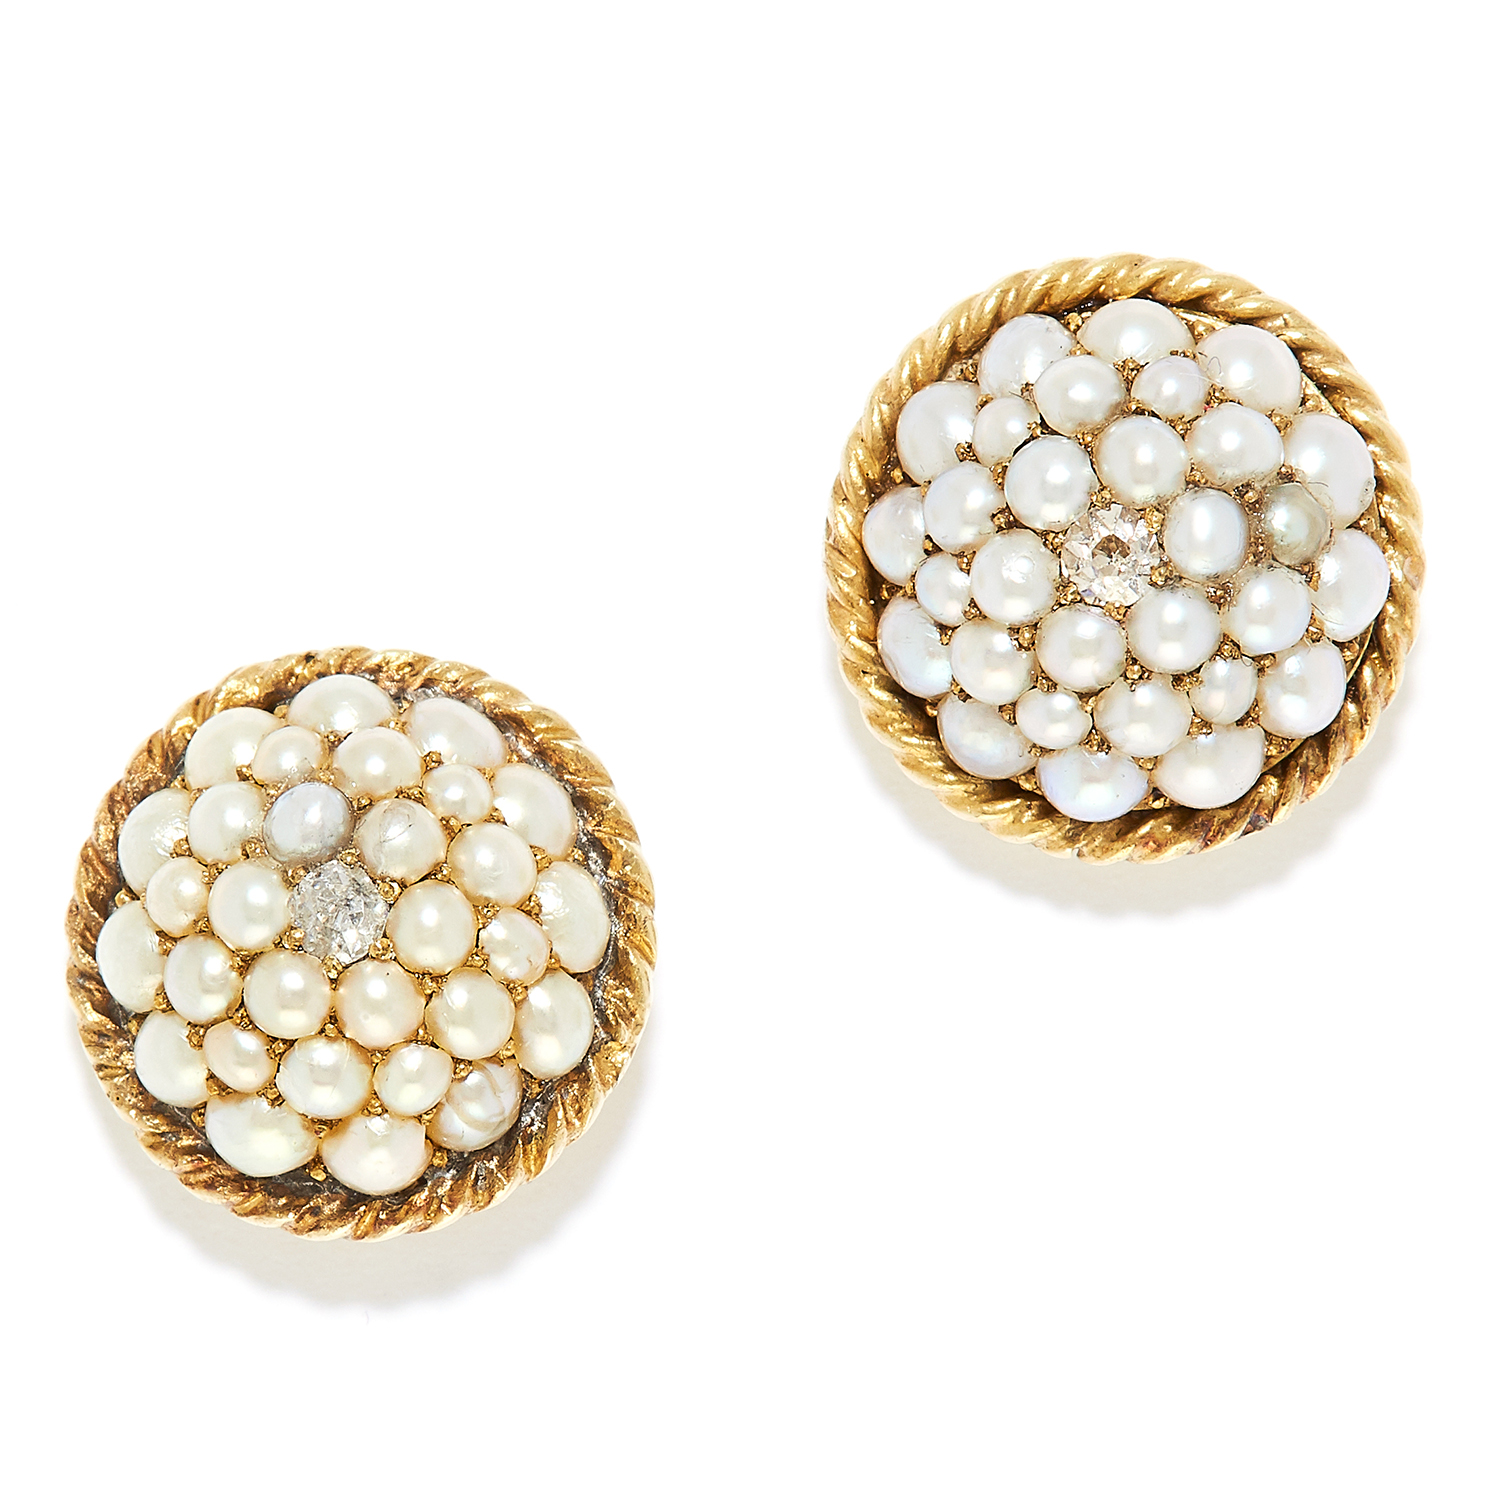 ANTIQUE PEARL AND DIAMOND EARRINGS in high carat yellow gold, each set with seed pearls and an old